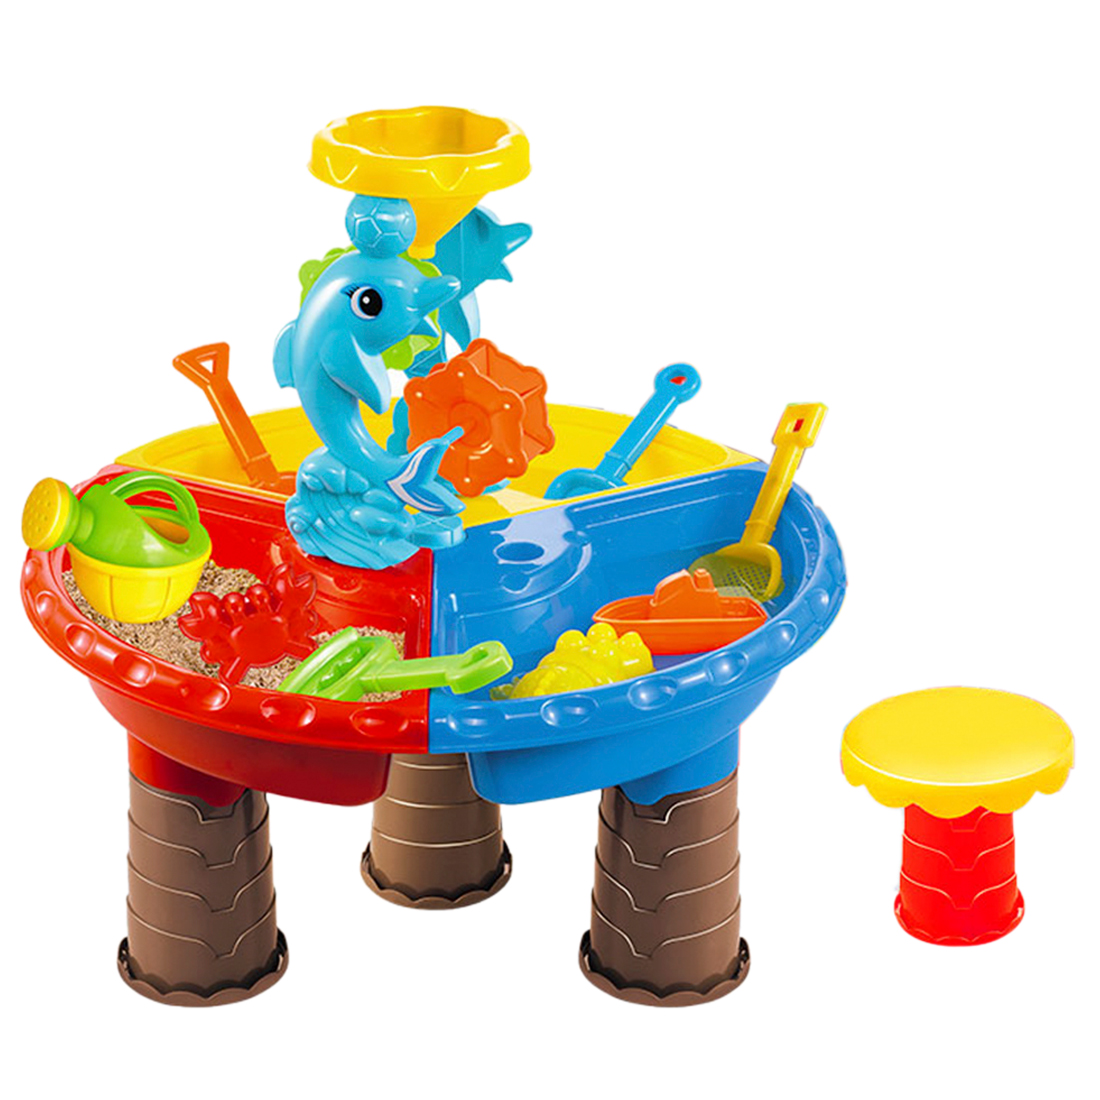 22Pcs Kids Non-toxic Plastic Sand Pit Set Beach Sand Table Water Play Outdoor Fun Toy 9827 - Color Random